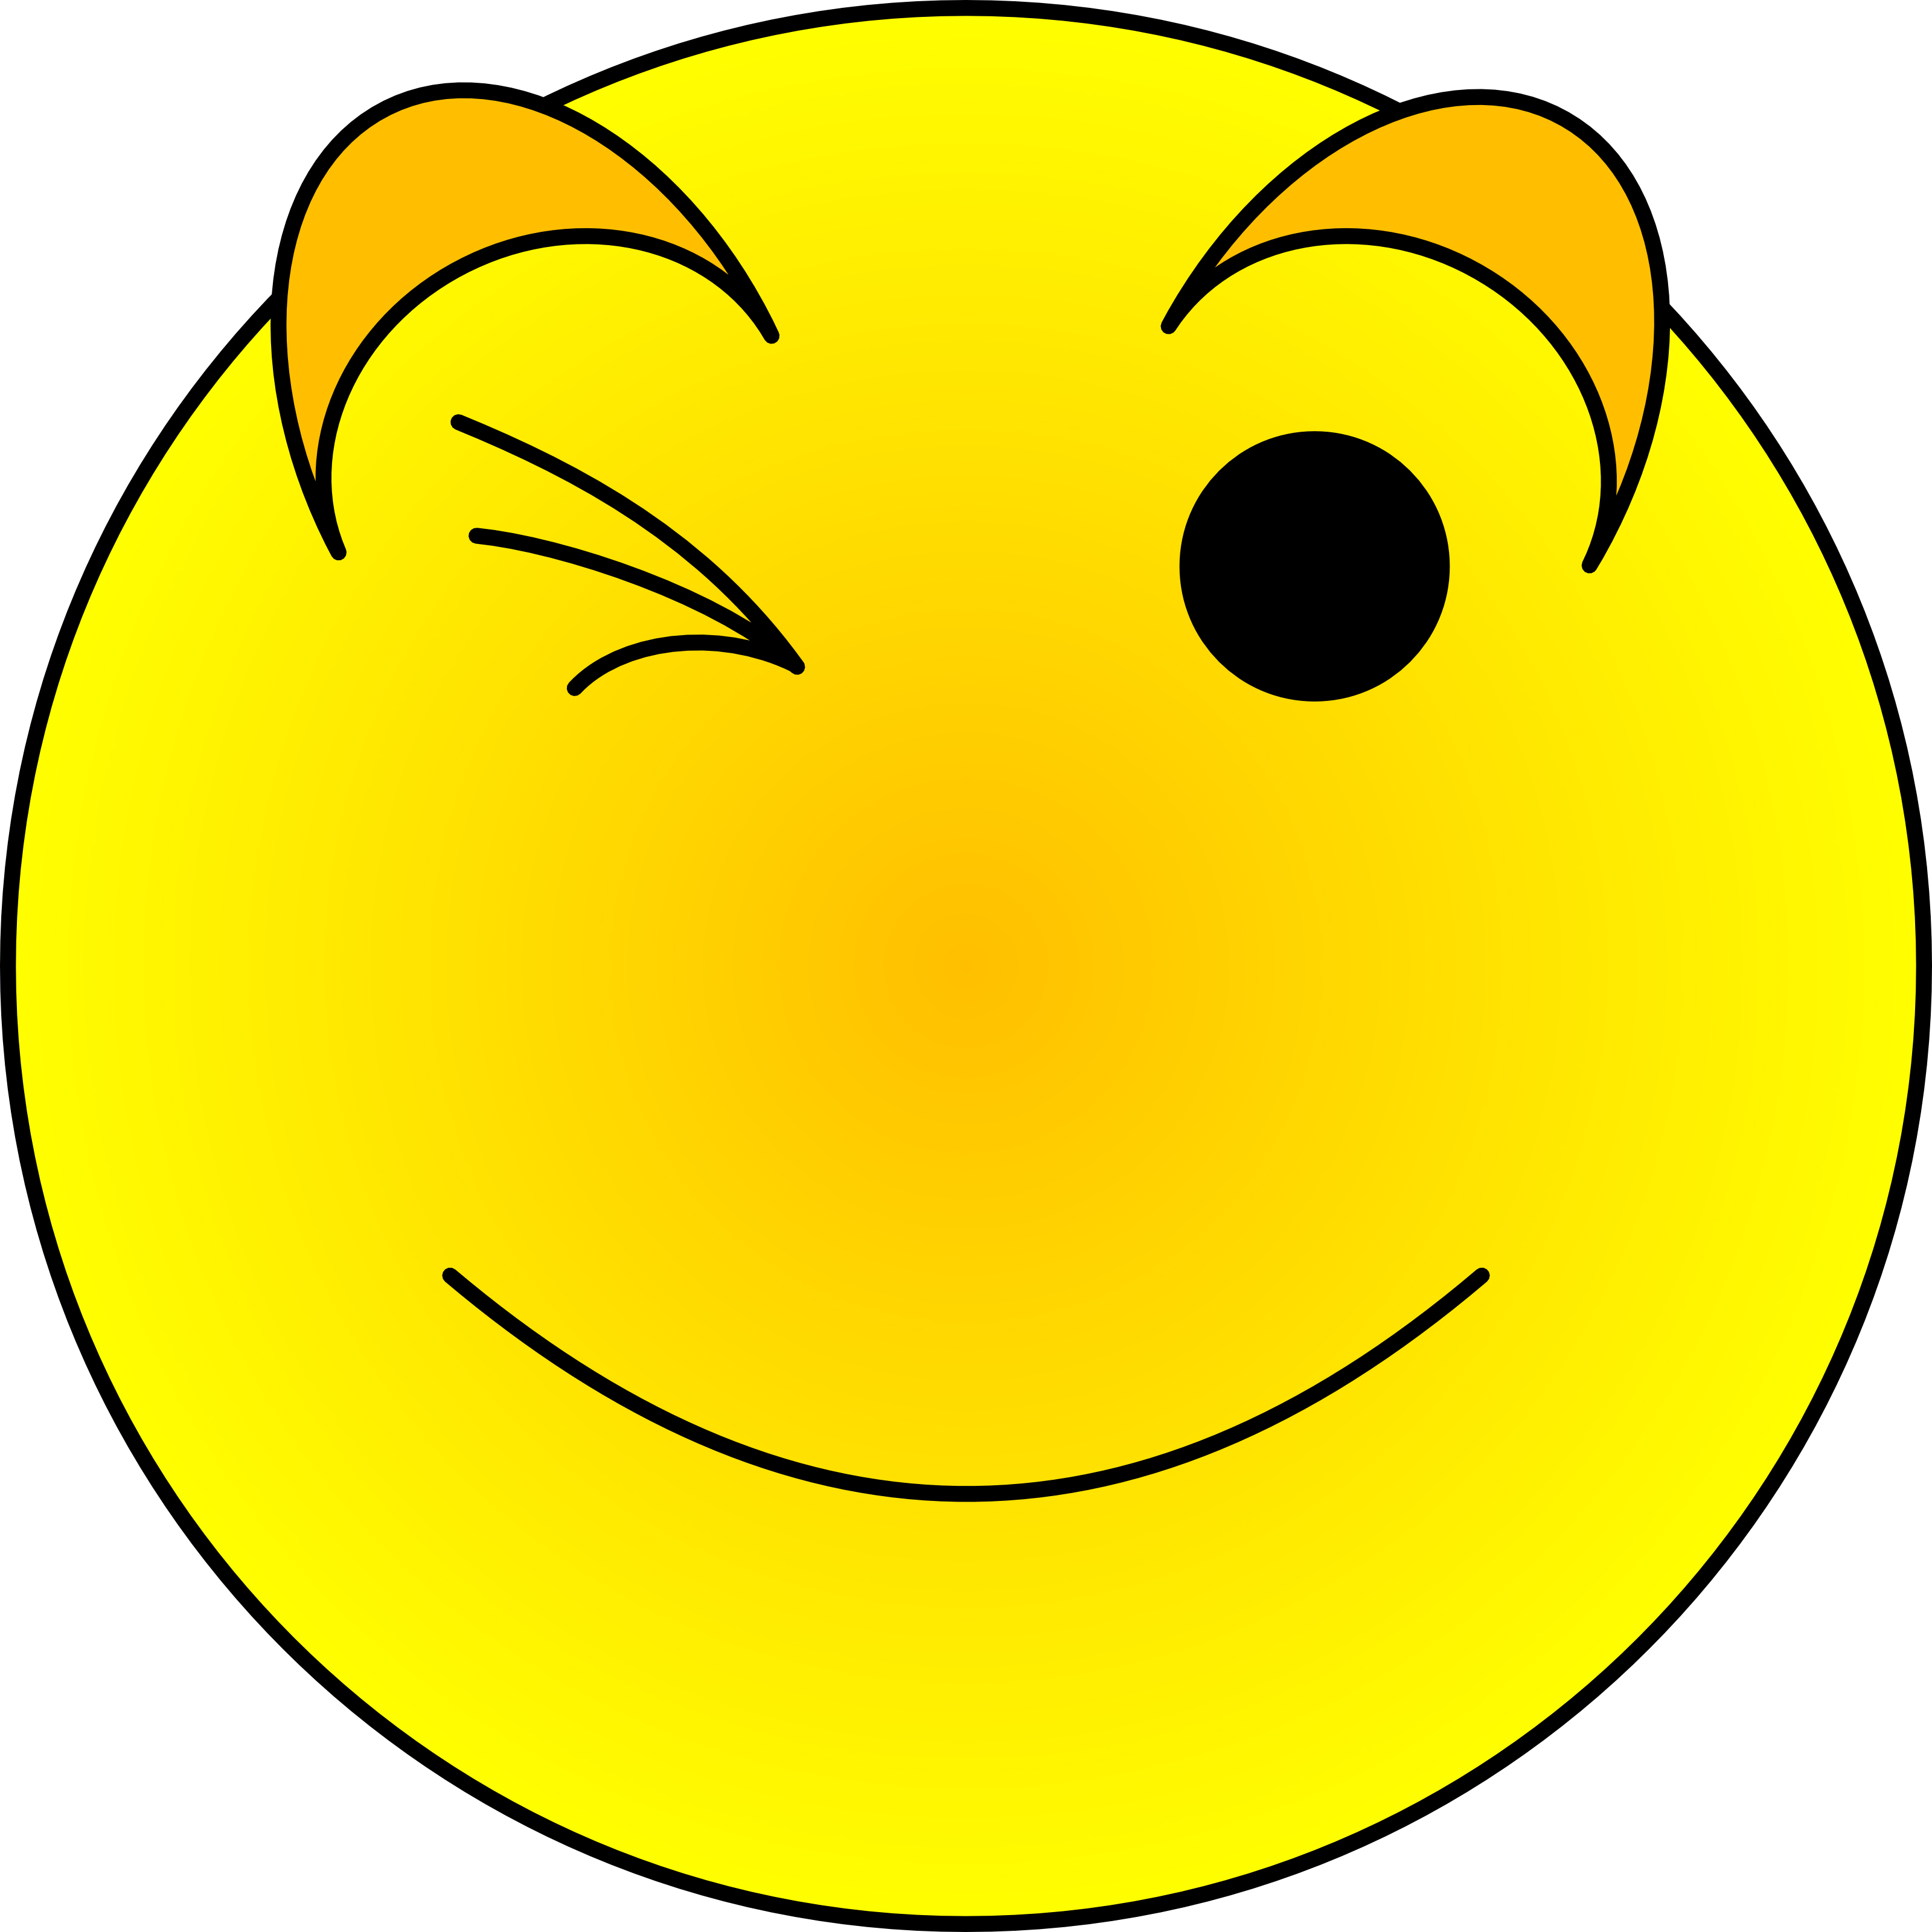 cliparts smiley - photo #15